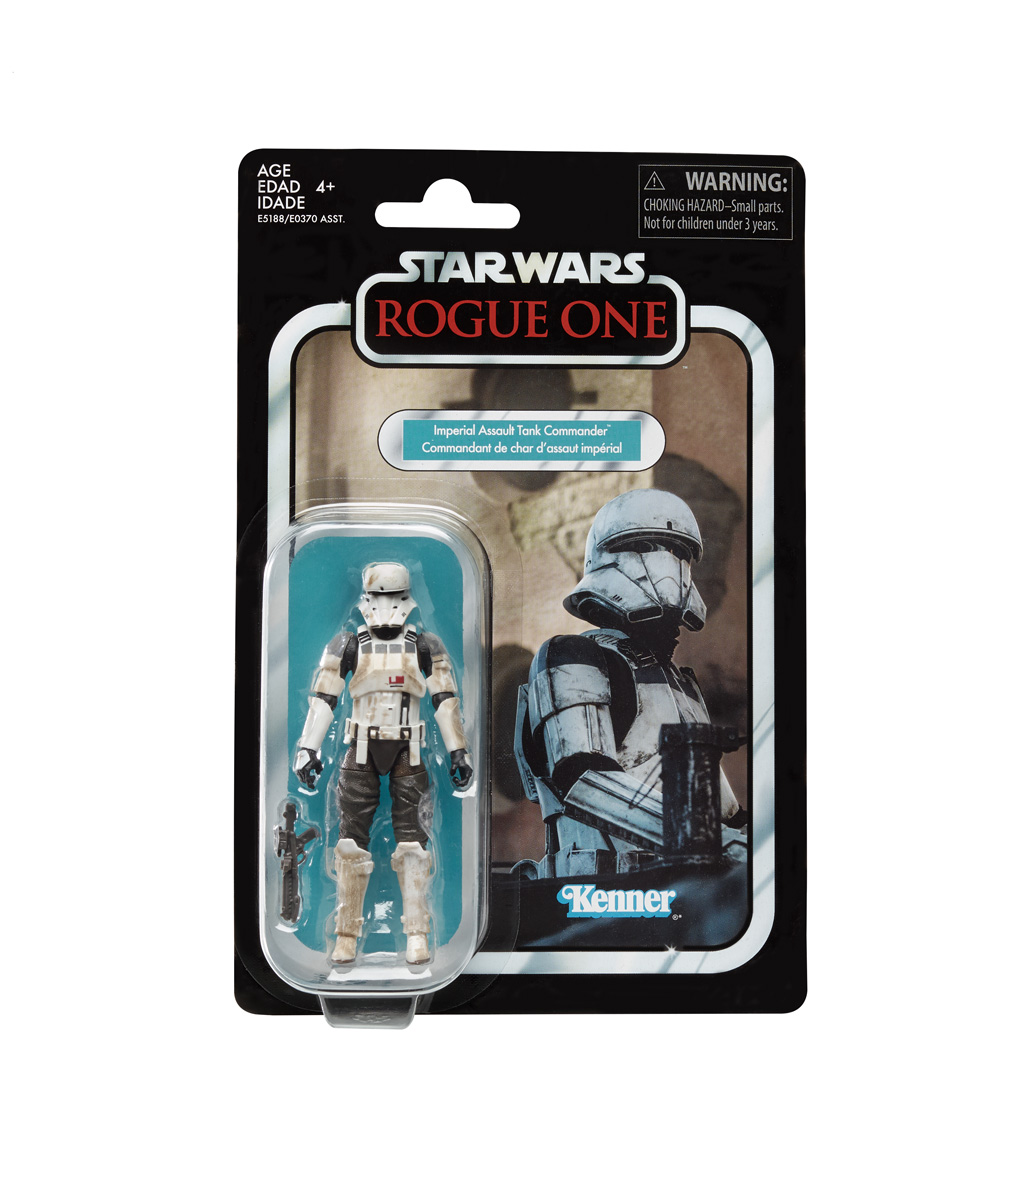 star-wars-the-vintage-collection-3-75-inch-figure-assortment-imperial-assault-tank-commander-in-pck-2